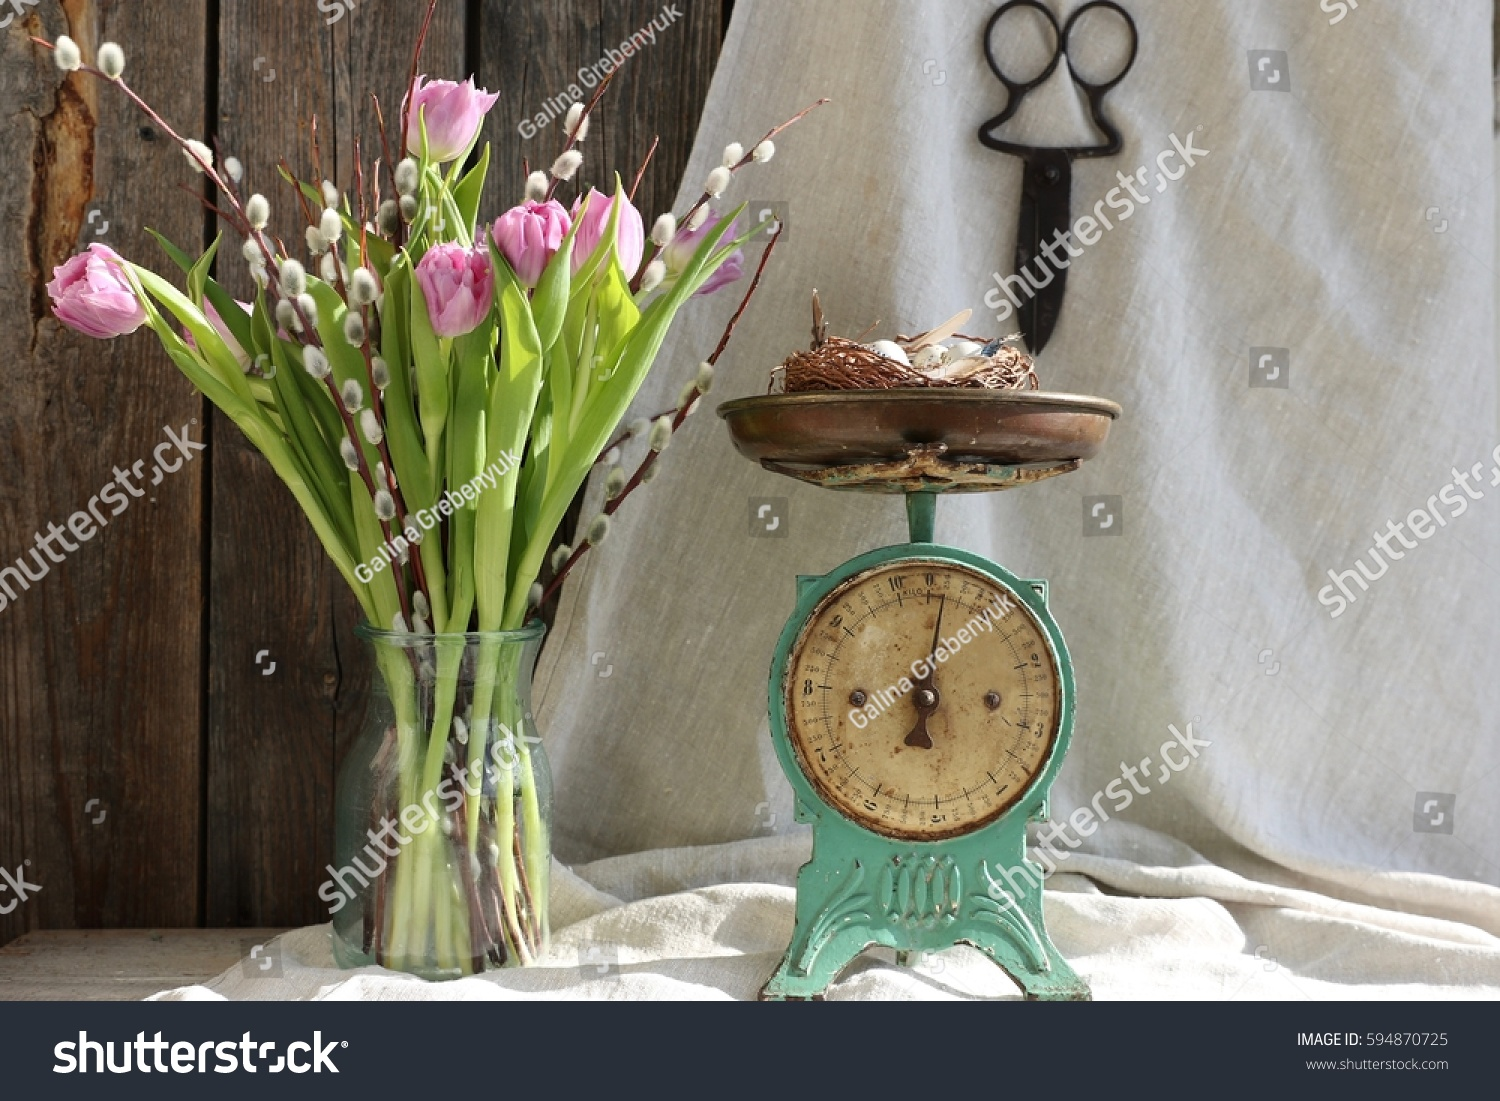 Floral scene bouquet pink tulip branches stock photo 594870725 floral scene with bouquet of pink tulip branches of willow in vintage glass jar reviewsmspy